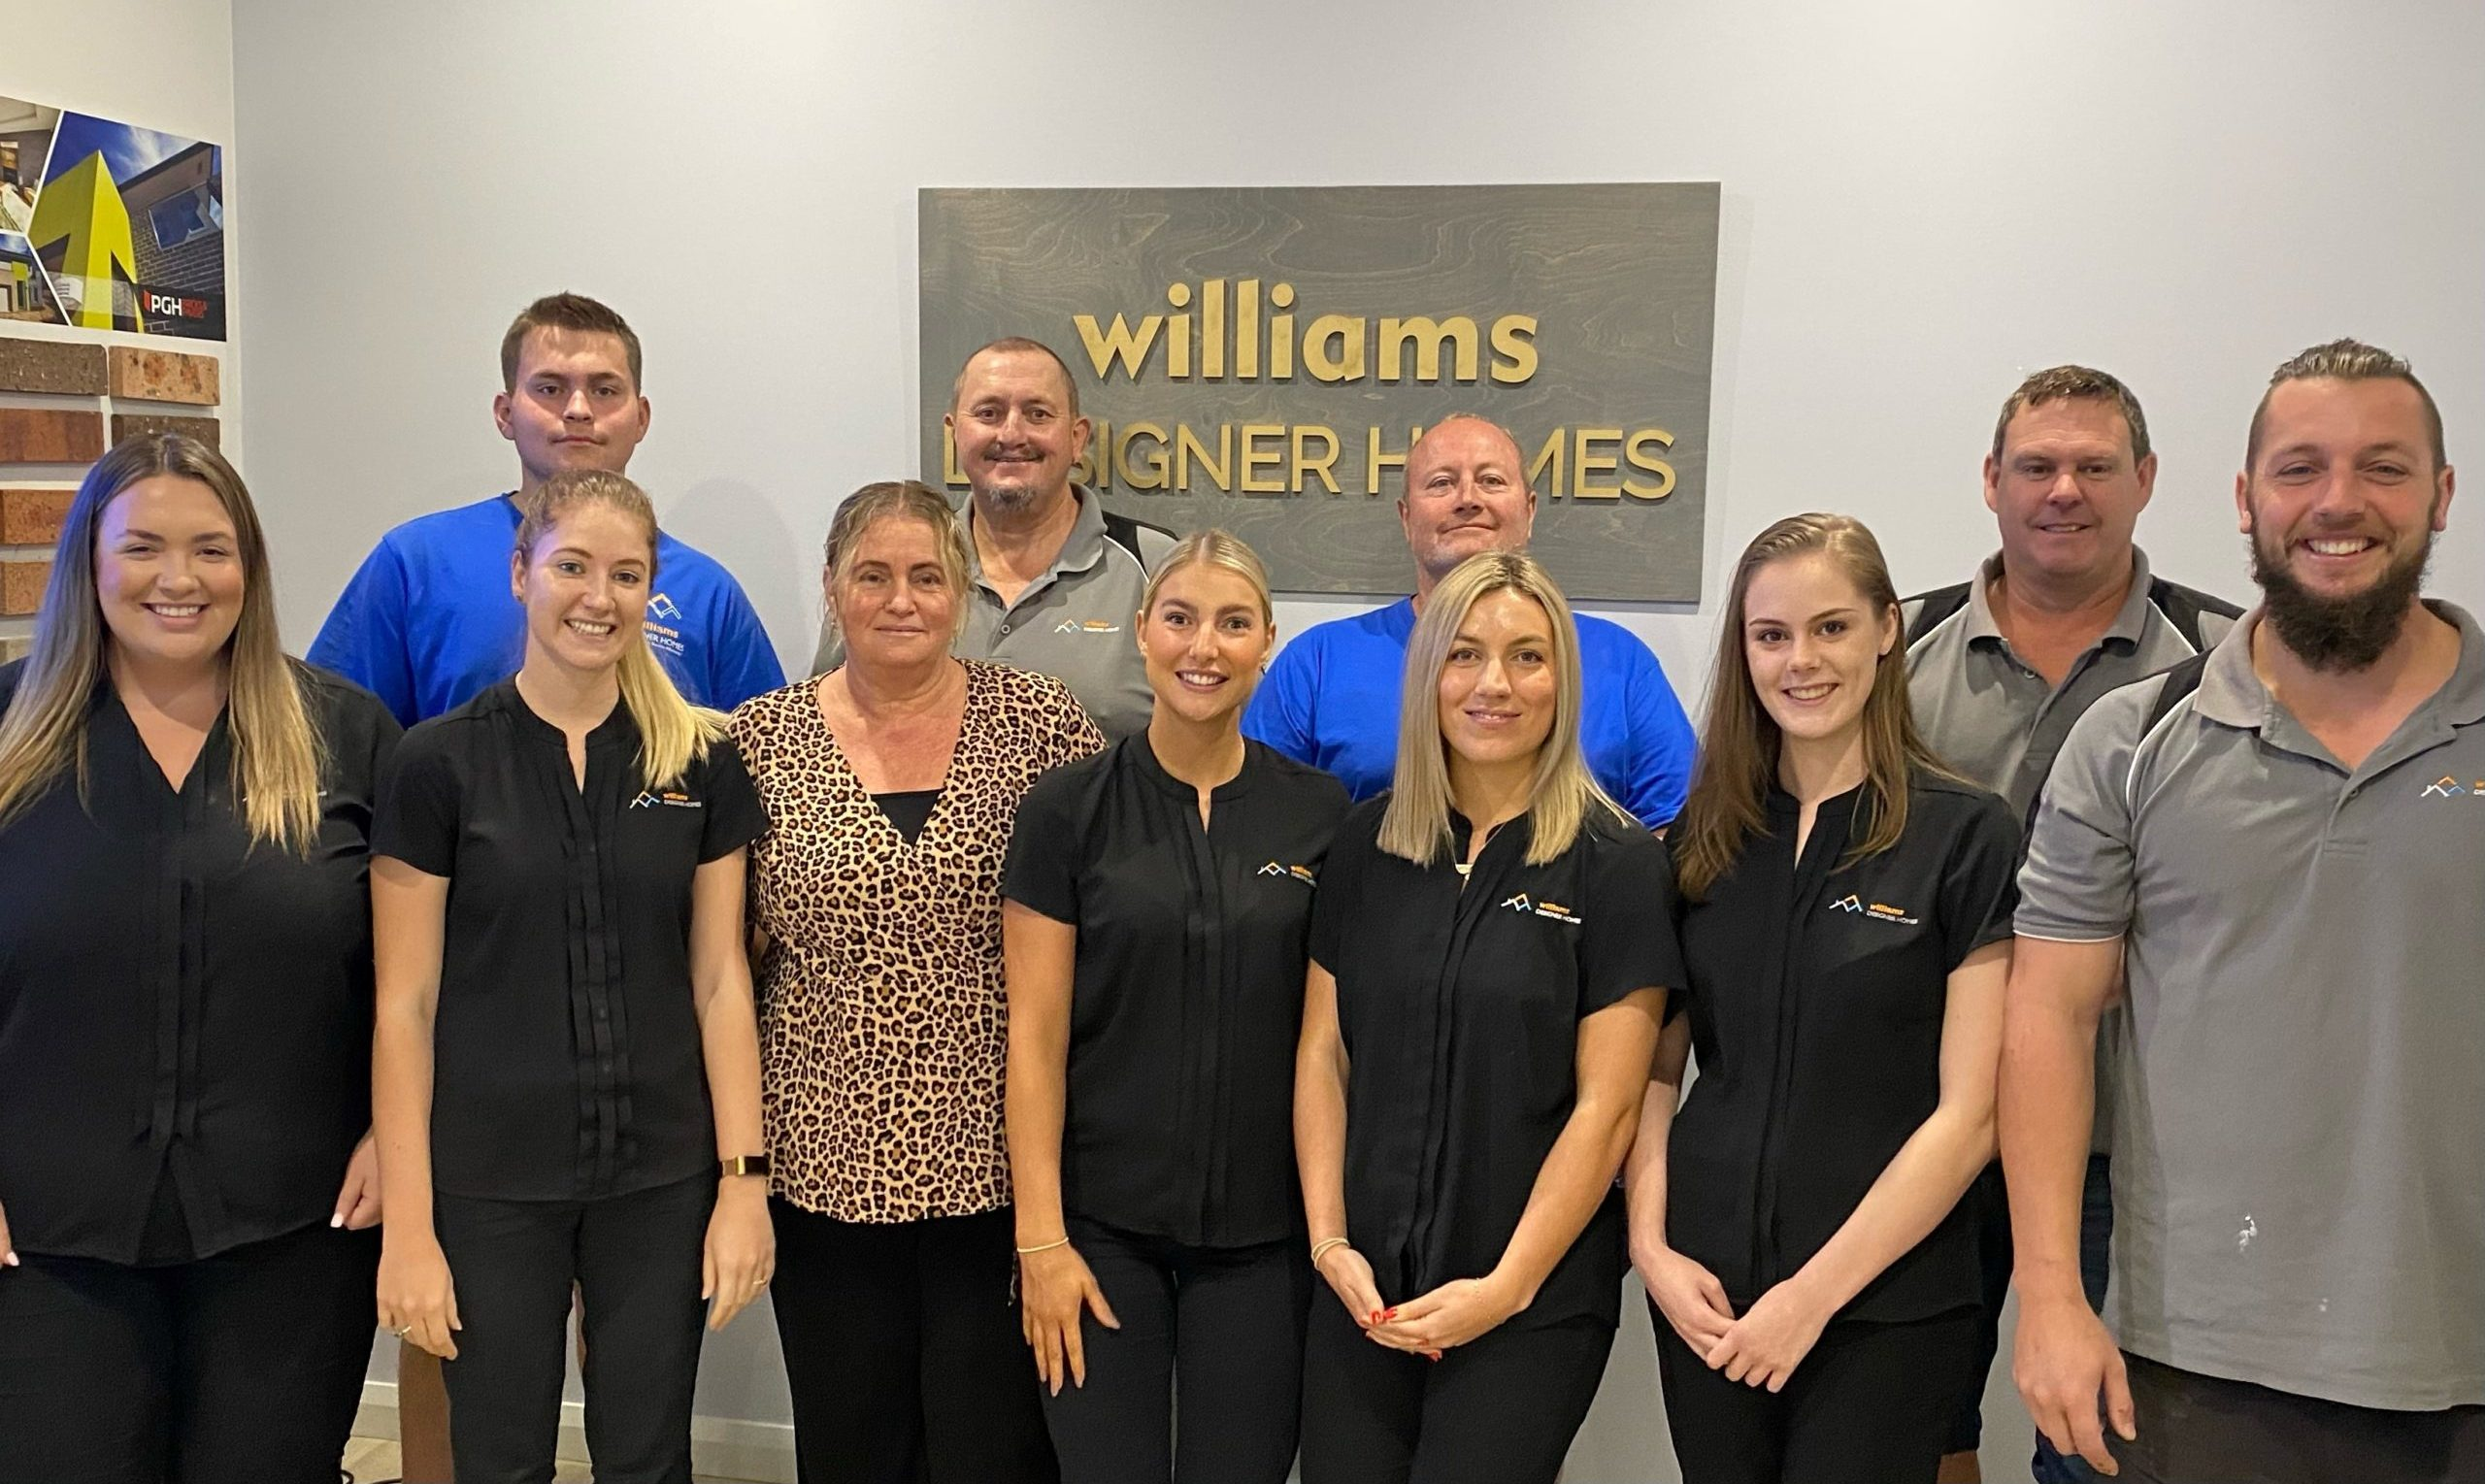 William Designer Homes team in front of an office wall with plaque behind them